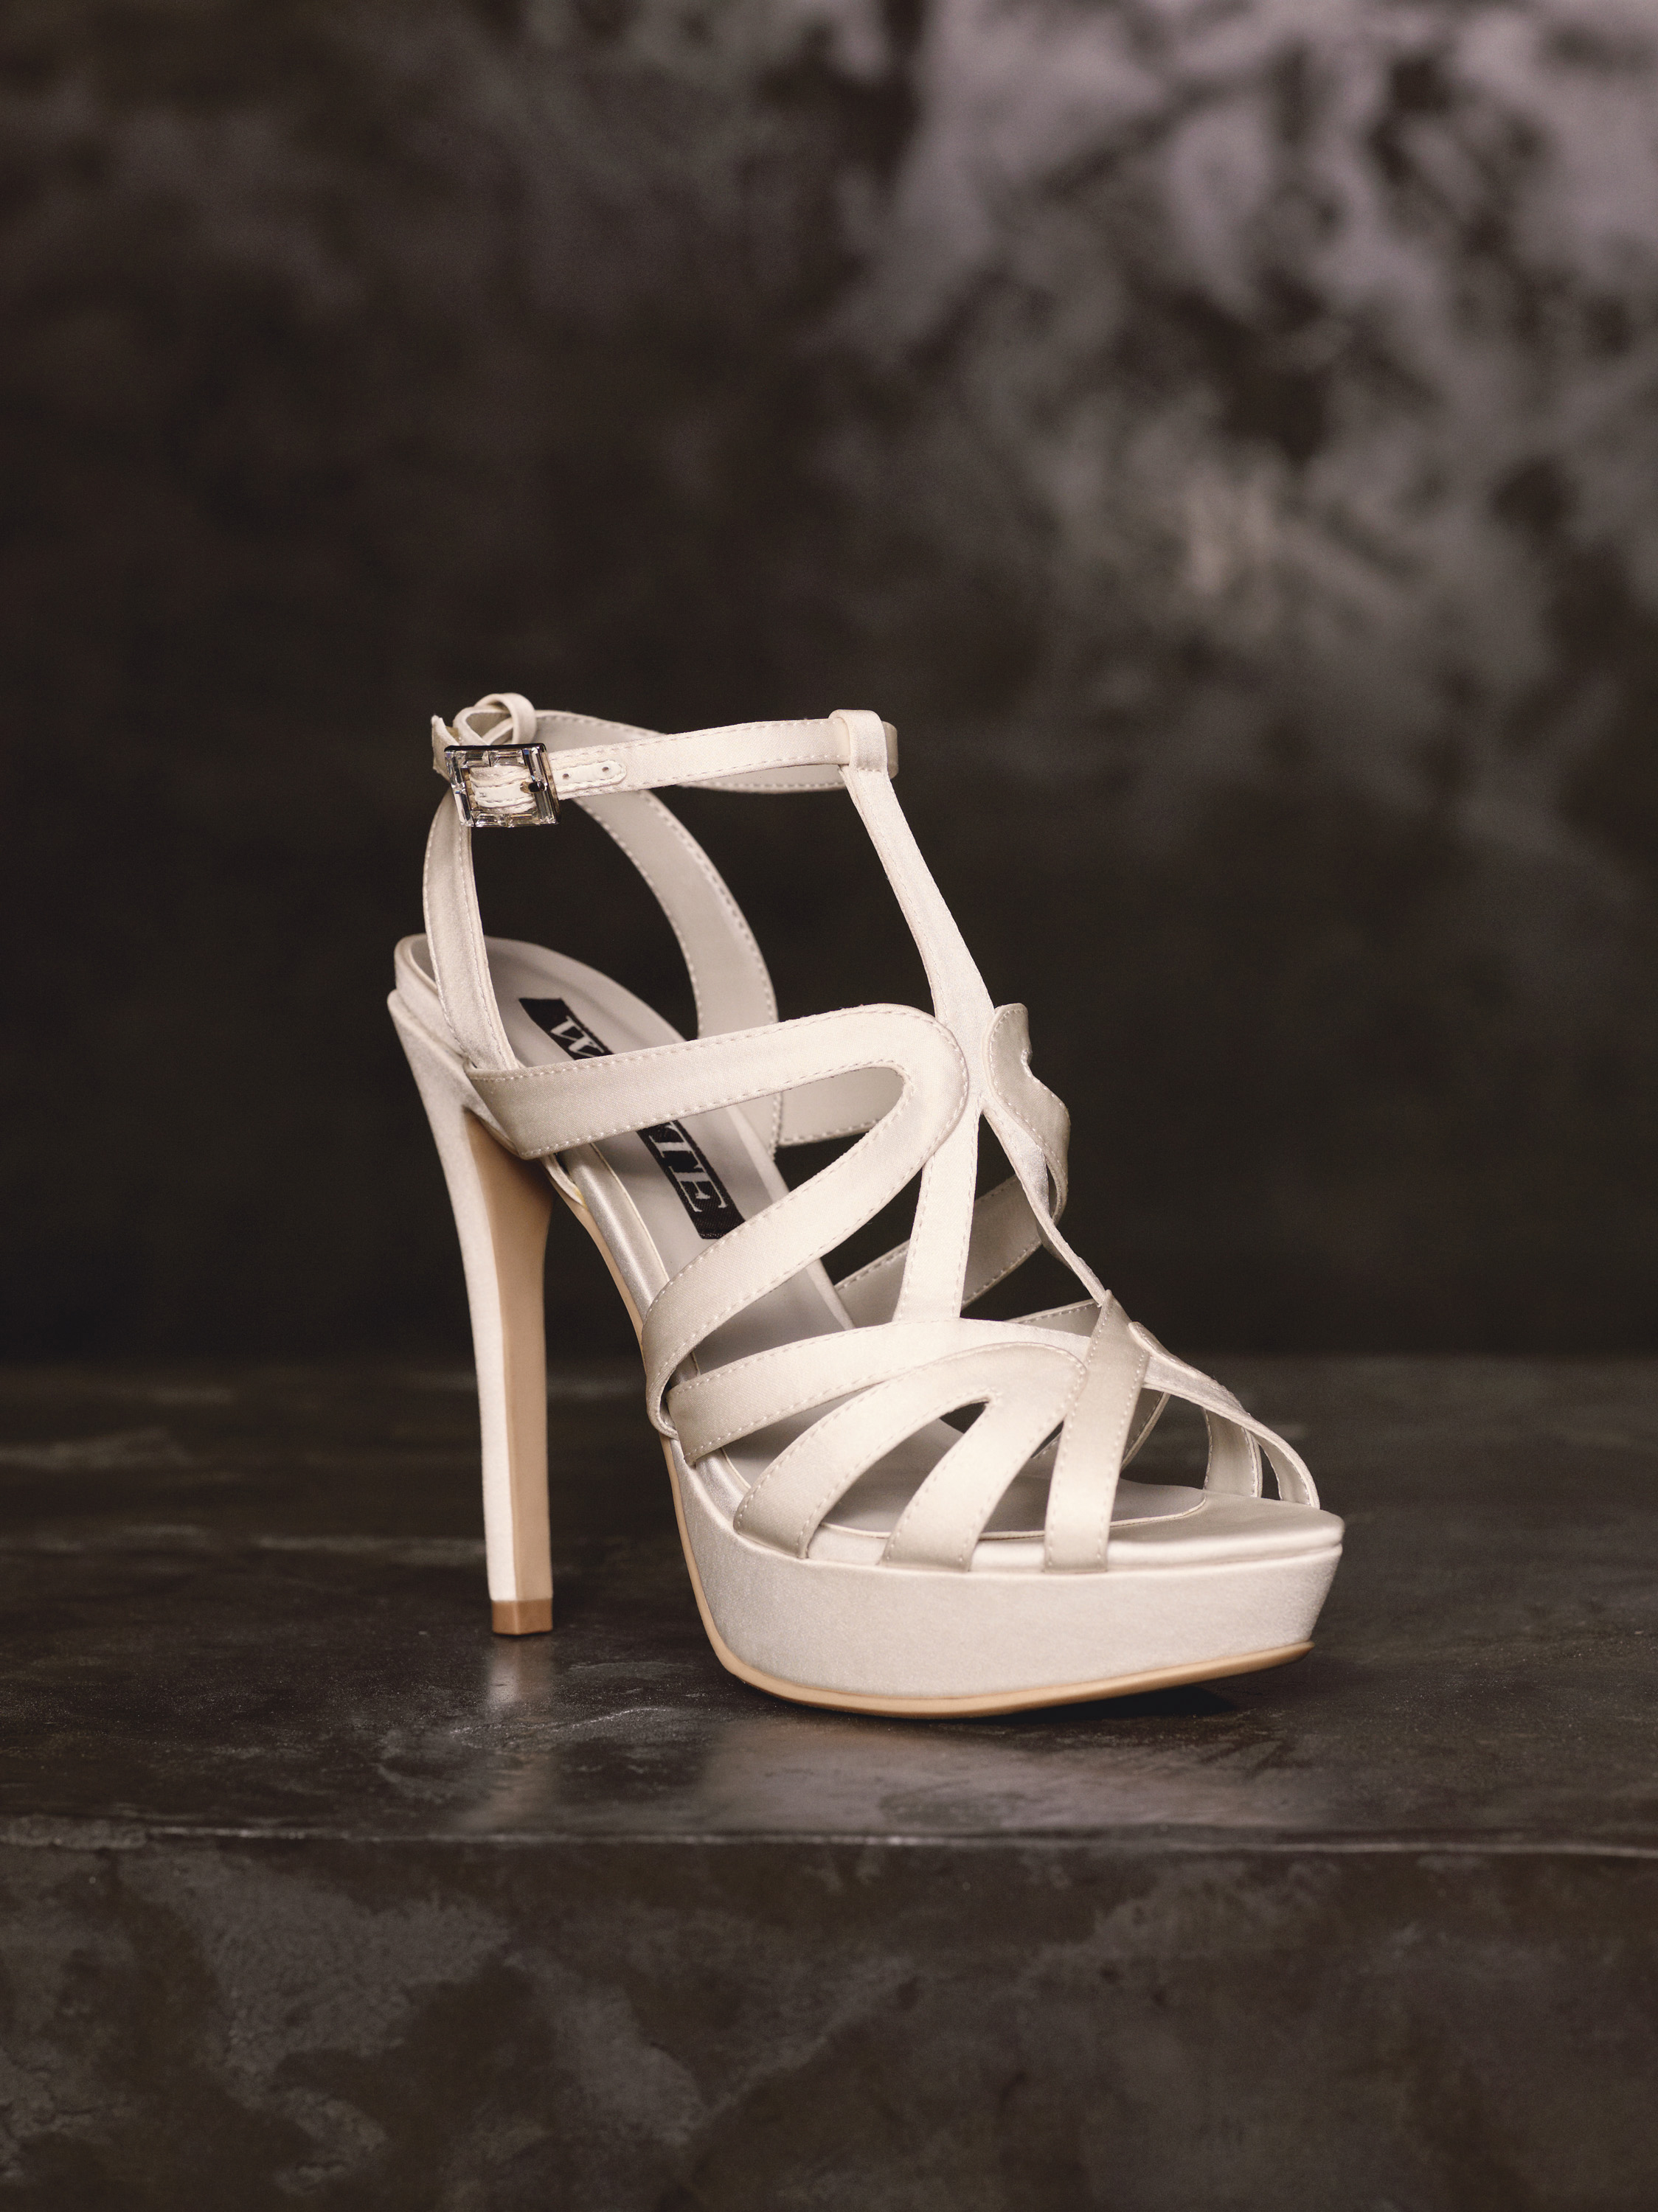 spring-2013-white-by-vera-wang-wedding-shoes-vw370125.original.jpg